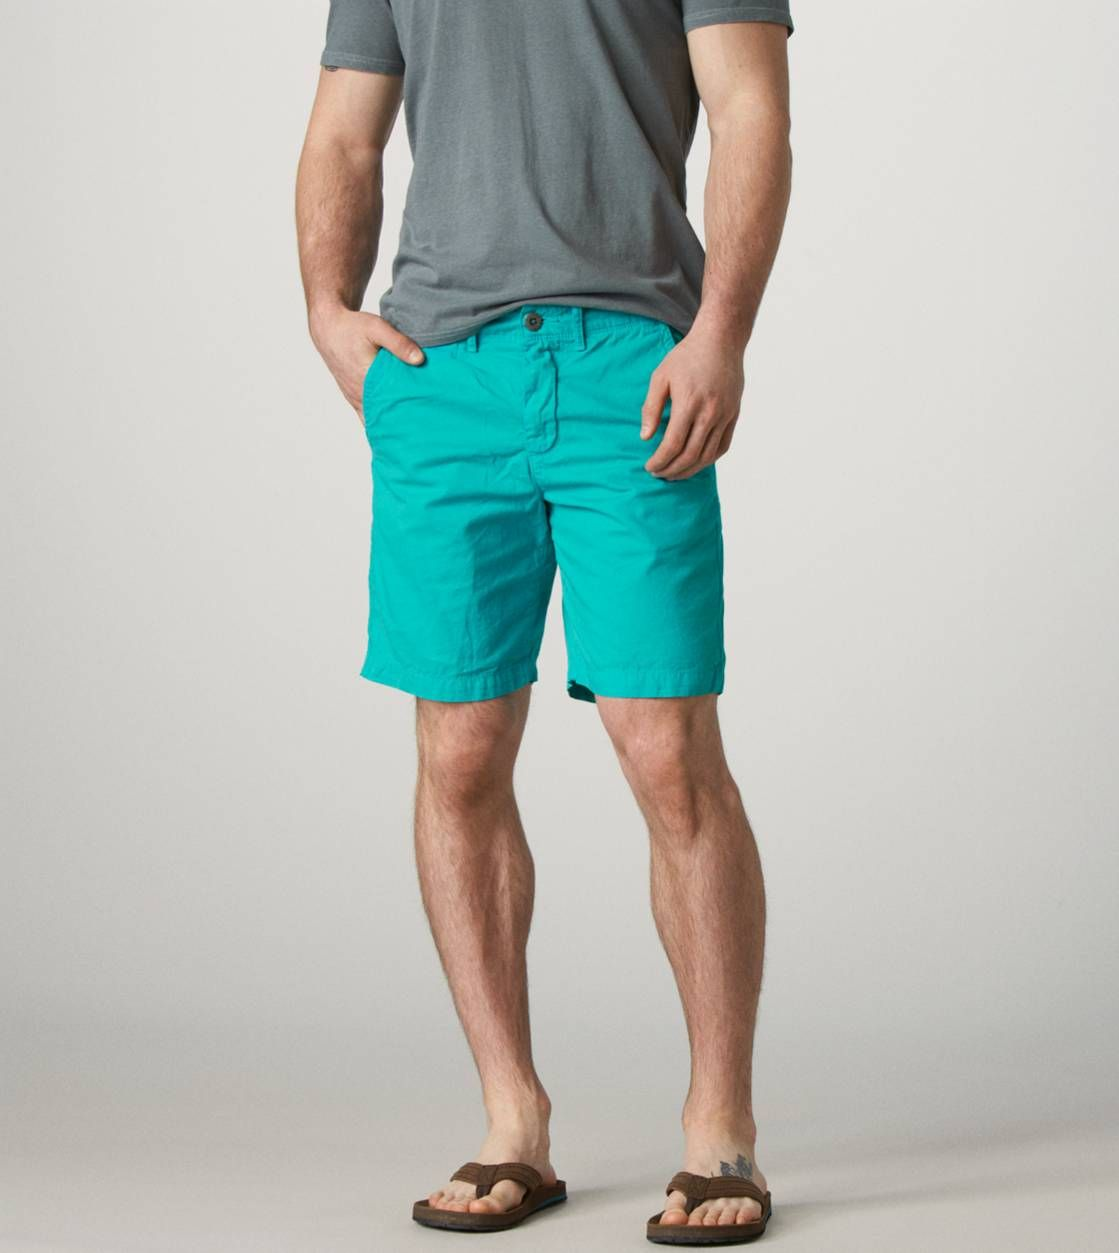 Clearance Pants Shorts American Eagle Outfitters Mens Shorts Outfits Blue Shorts Outfit Turquoise Shorts Outfit